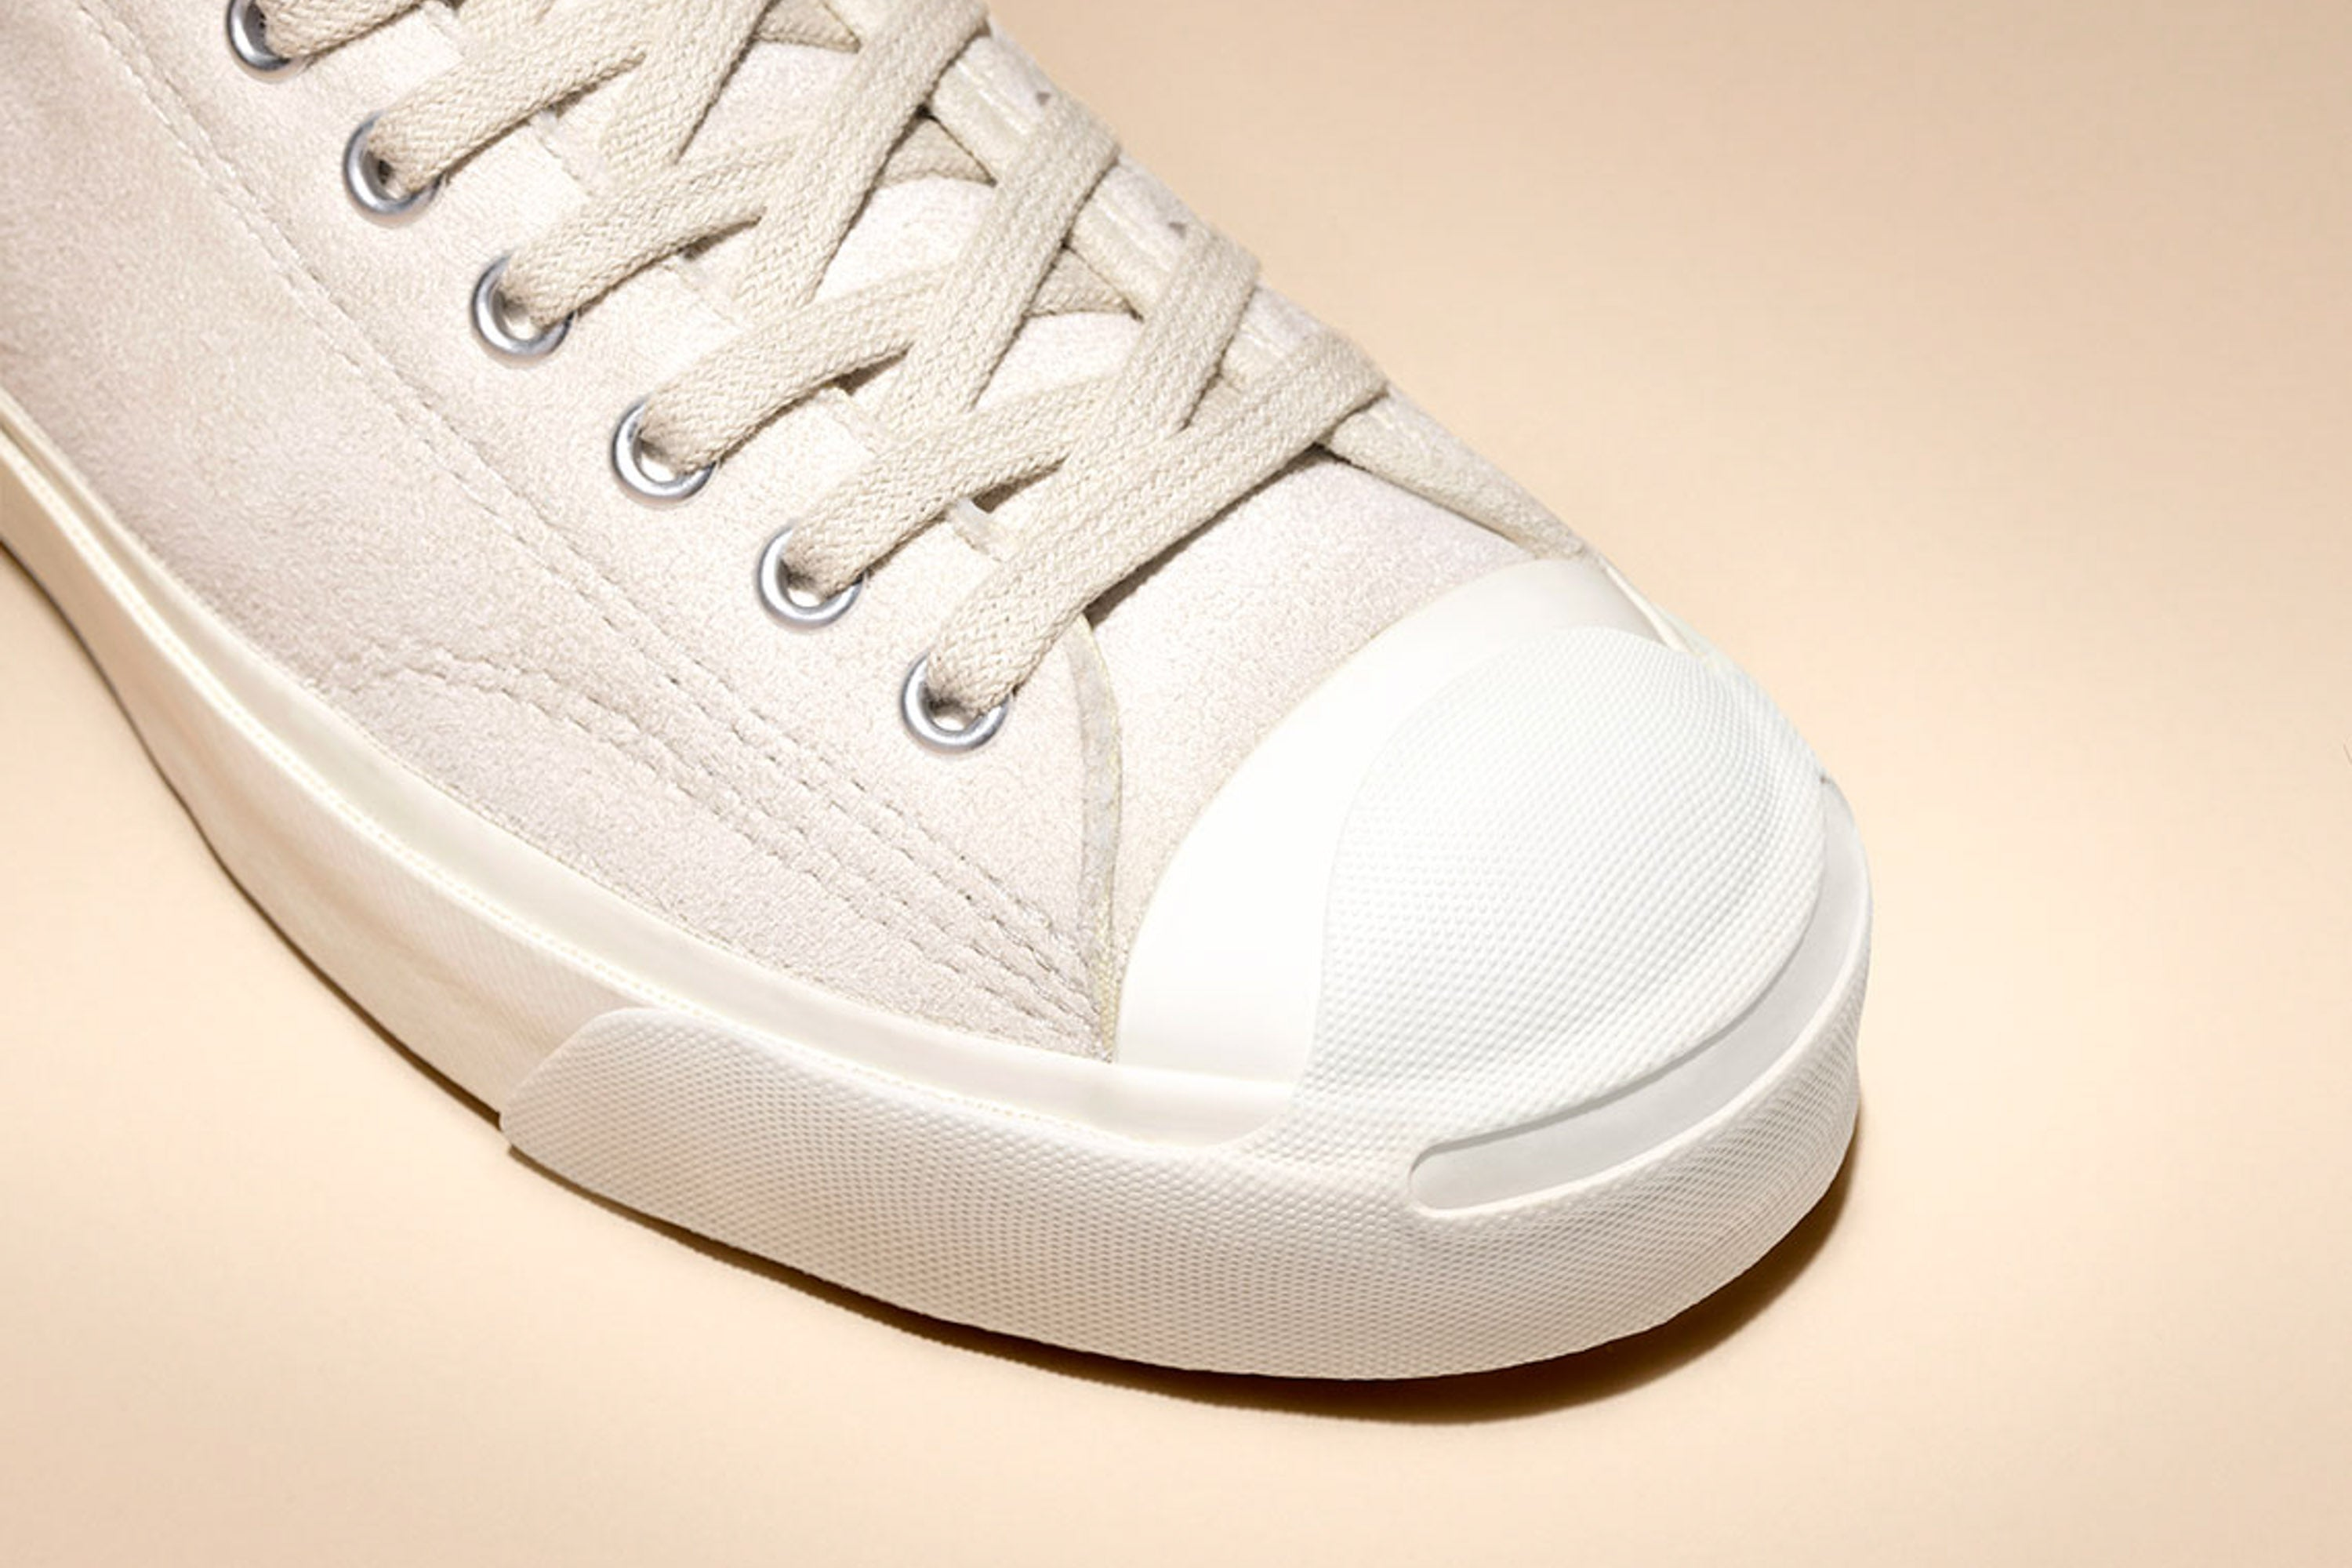 CLOT x Converse Jack Purcell OX - White